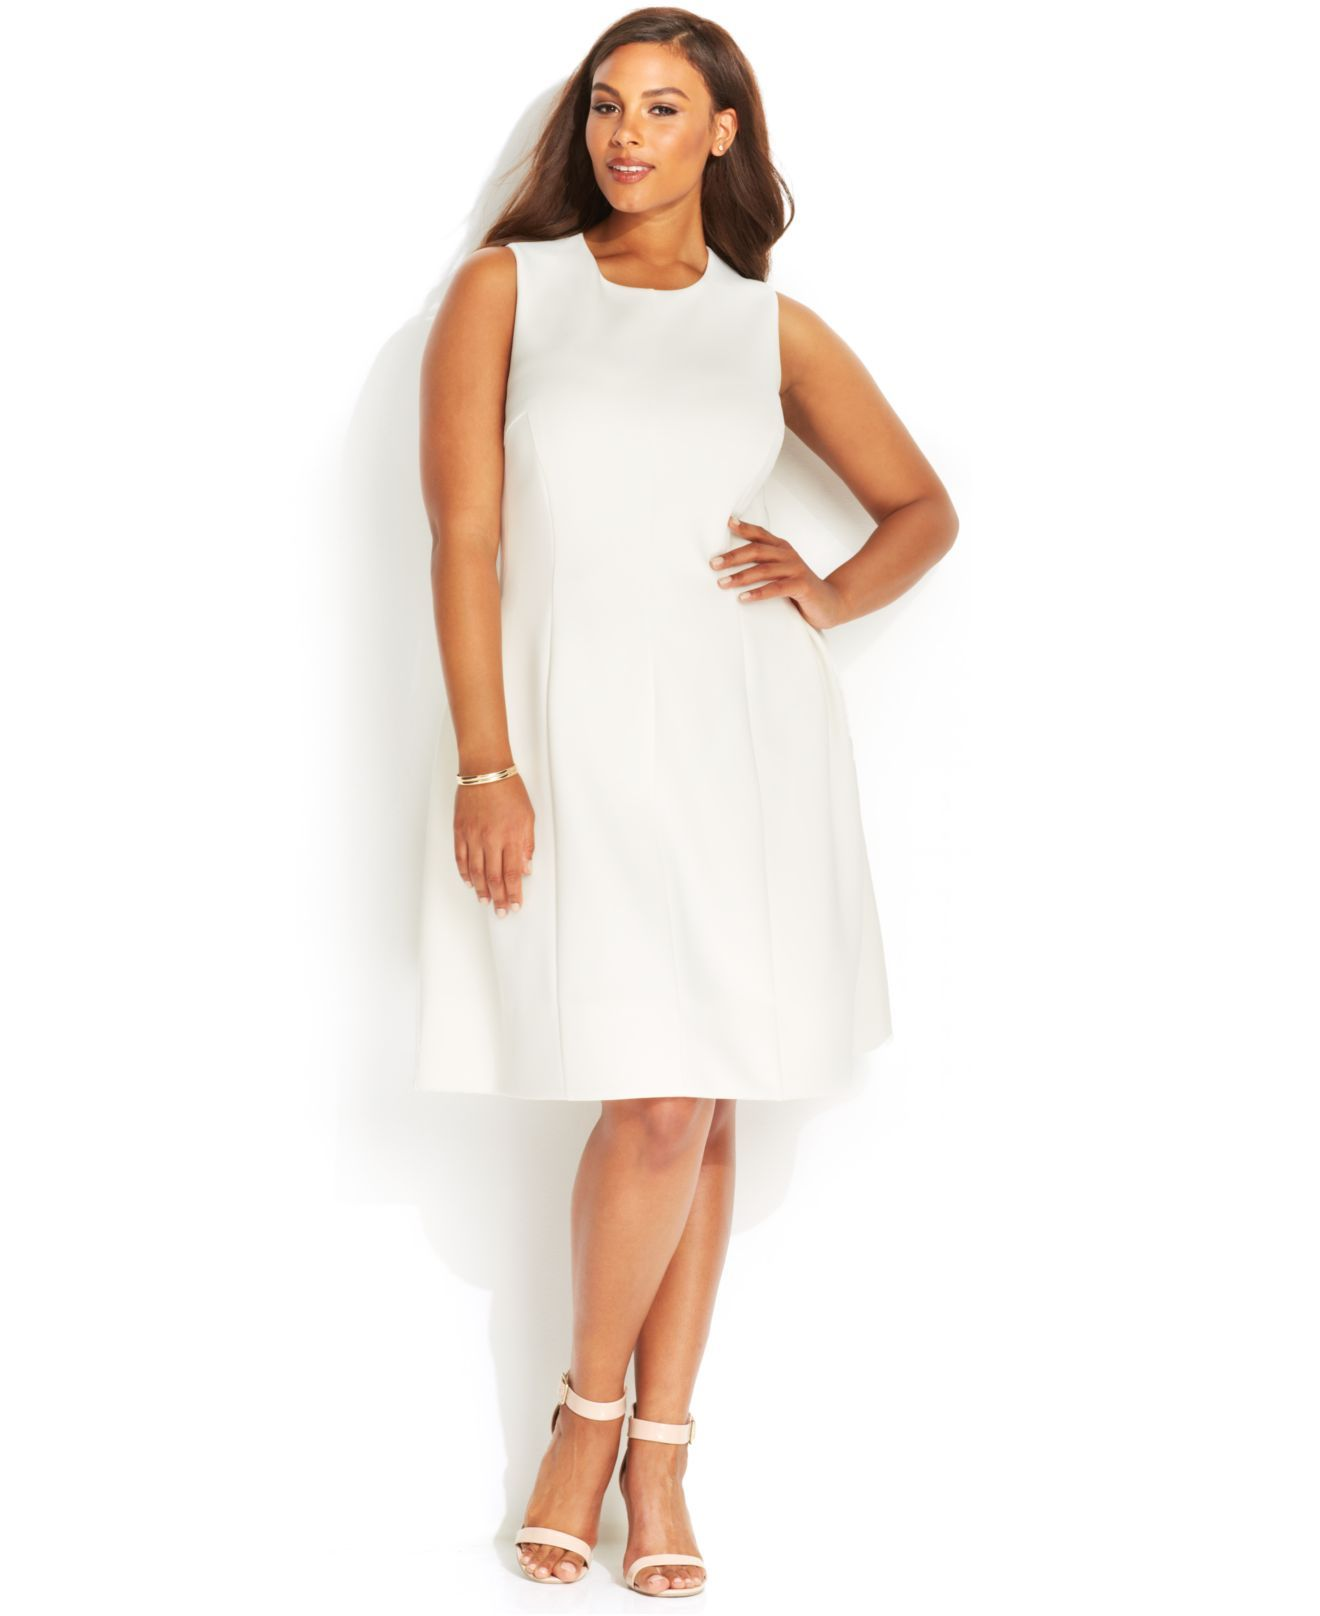 White scuba dress plus size